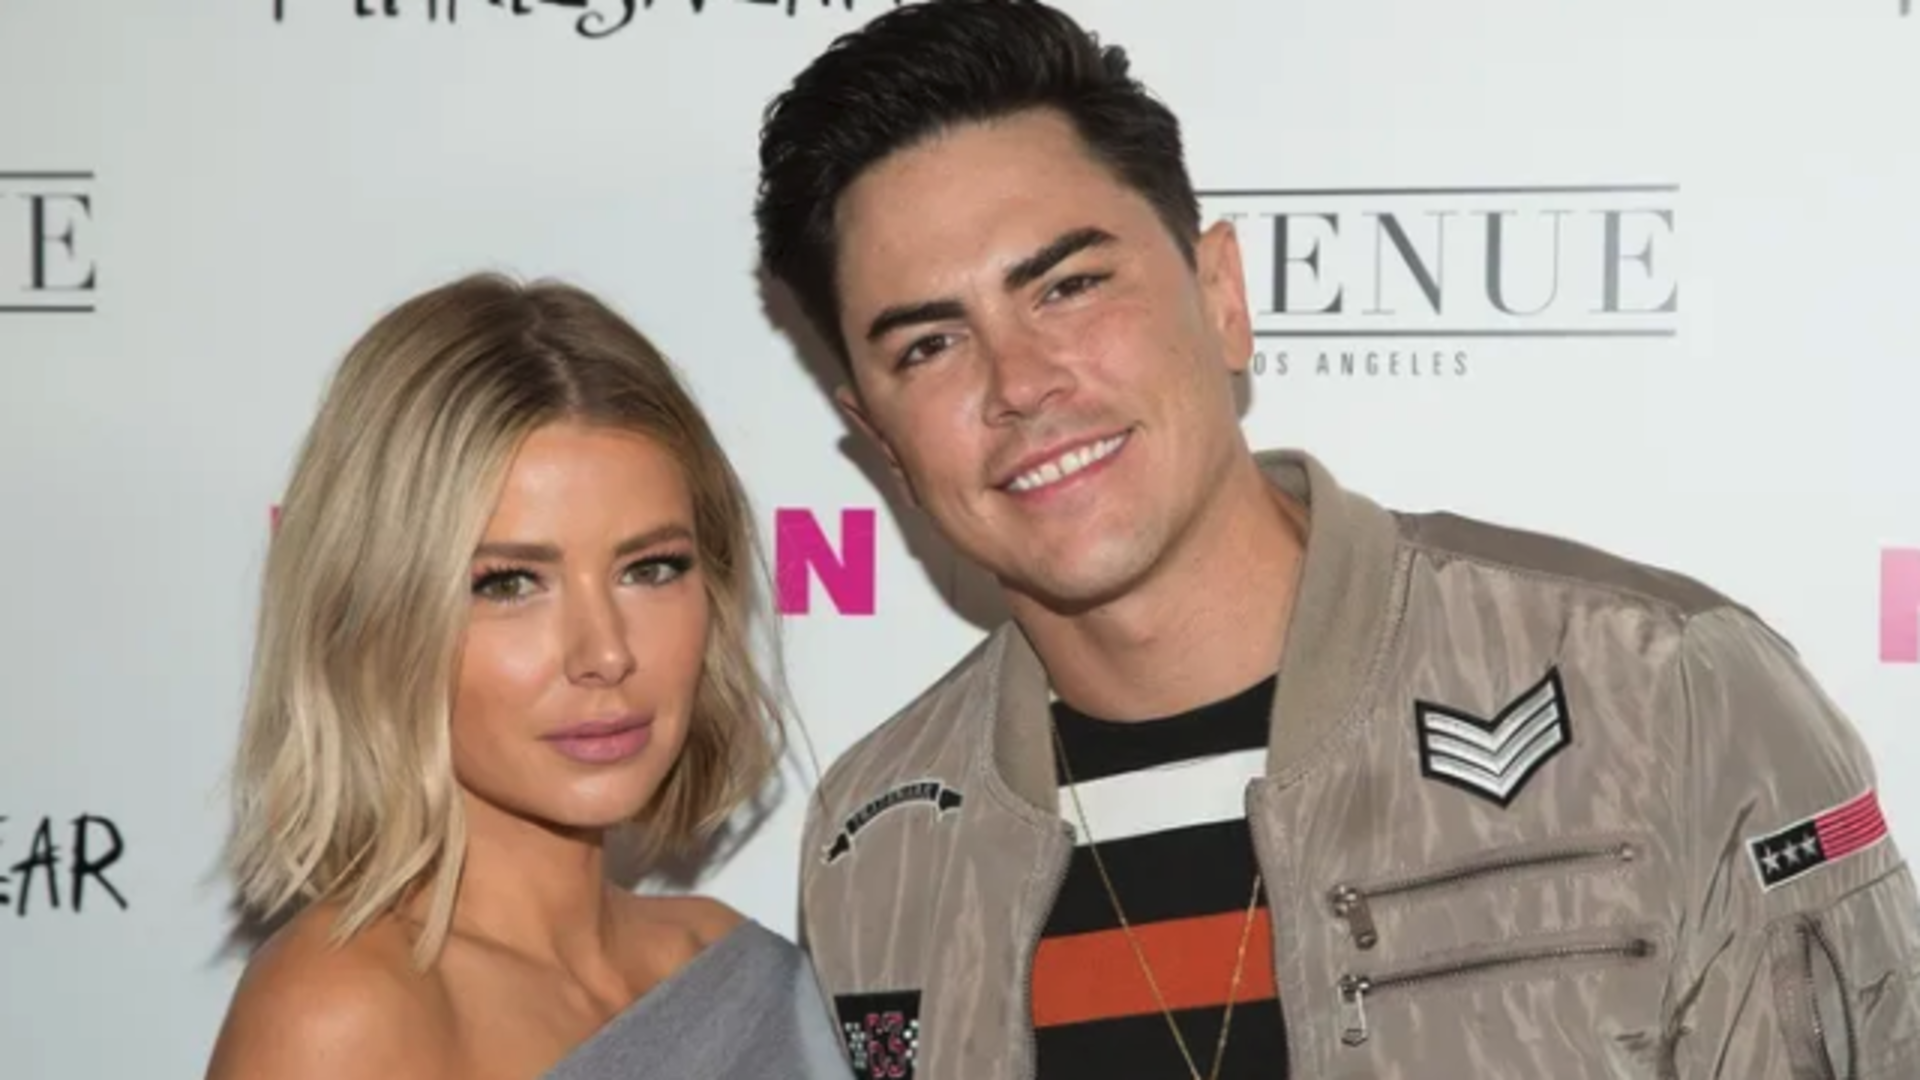 Inside the 'Vanderpump Rules' Stars' New Home: You'll Be Shocked